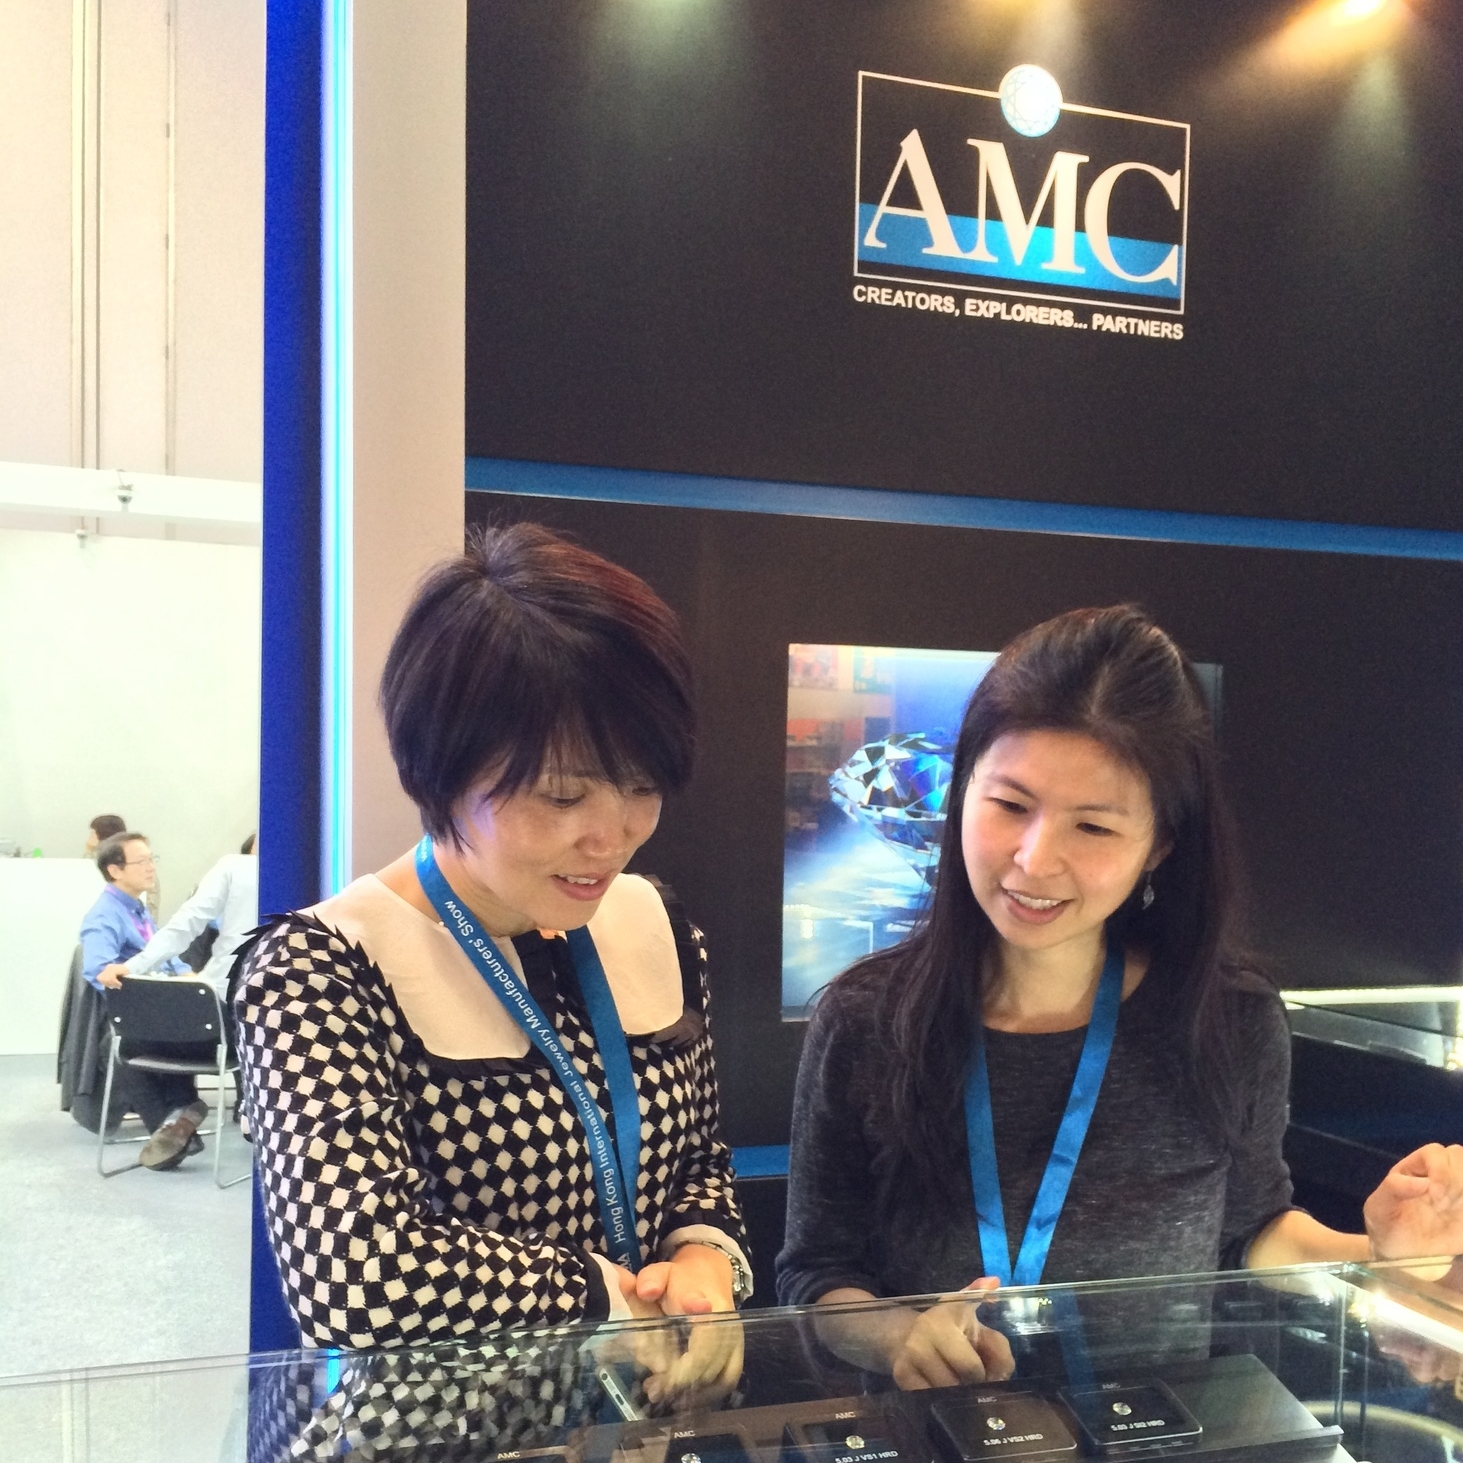 AMC-diamonds-company-05